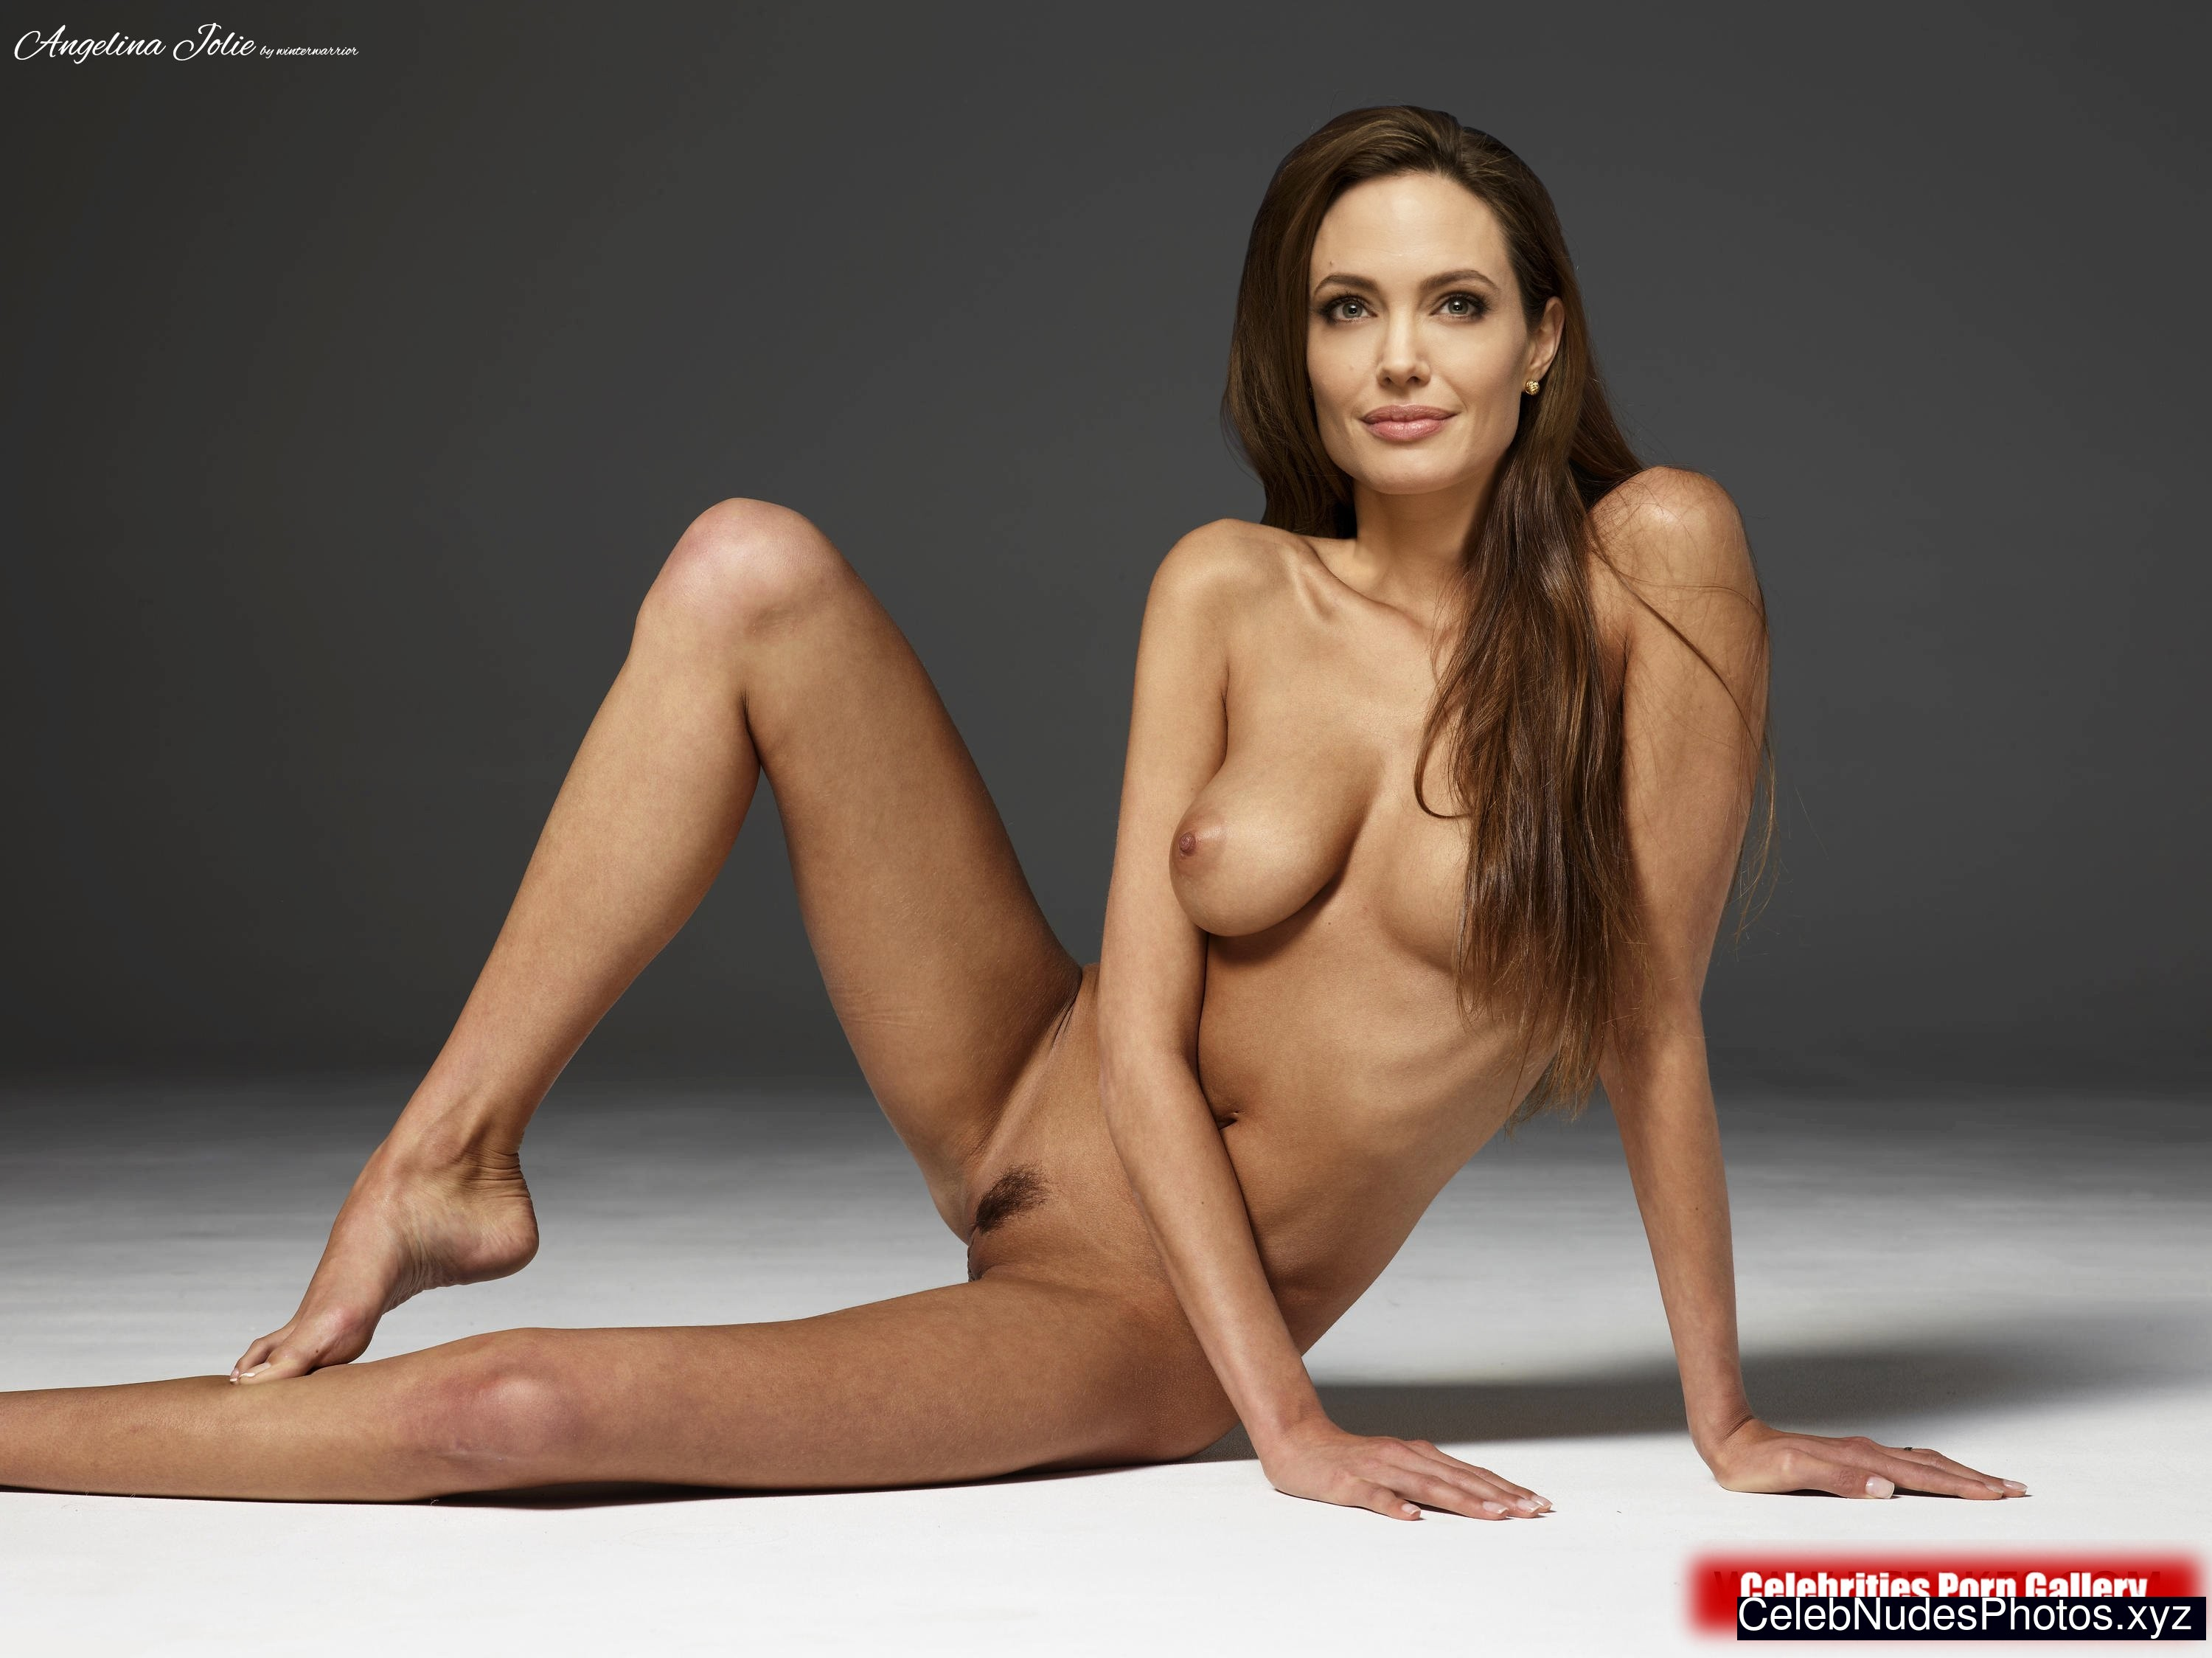 Necessary Celebrity famou nude angelina jolie understood that